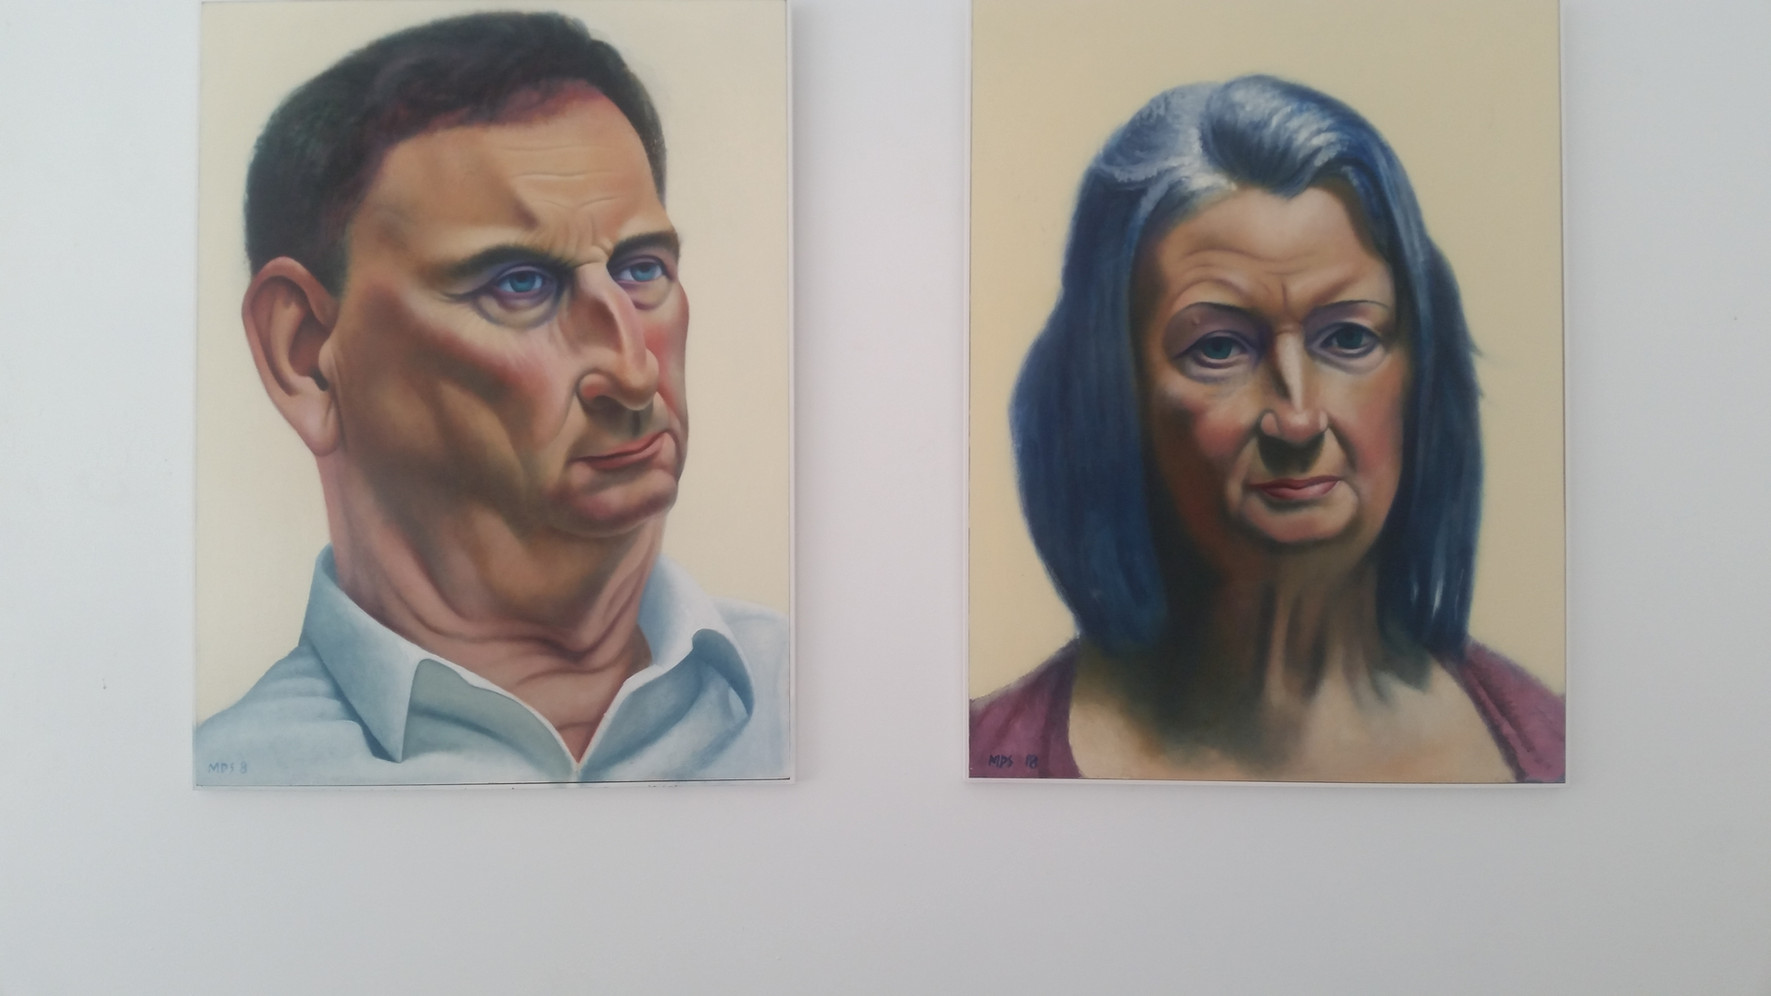 Portraits of Dr David Wilson and Catherine Corcoran